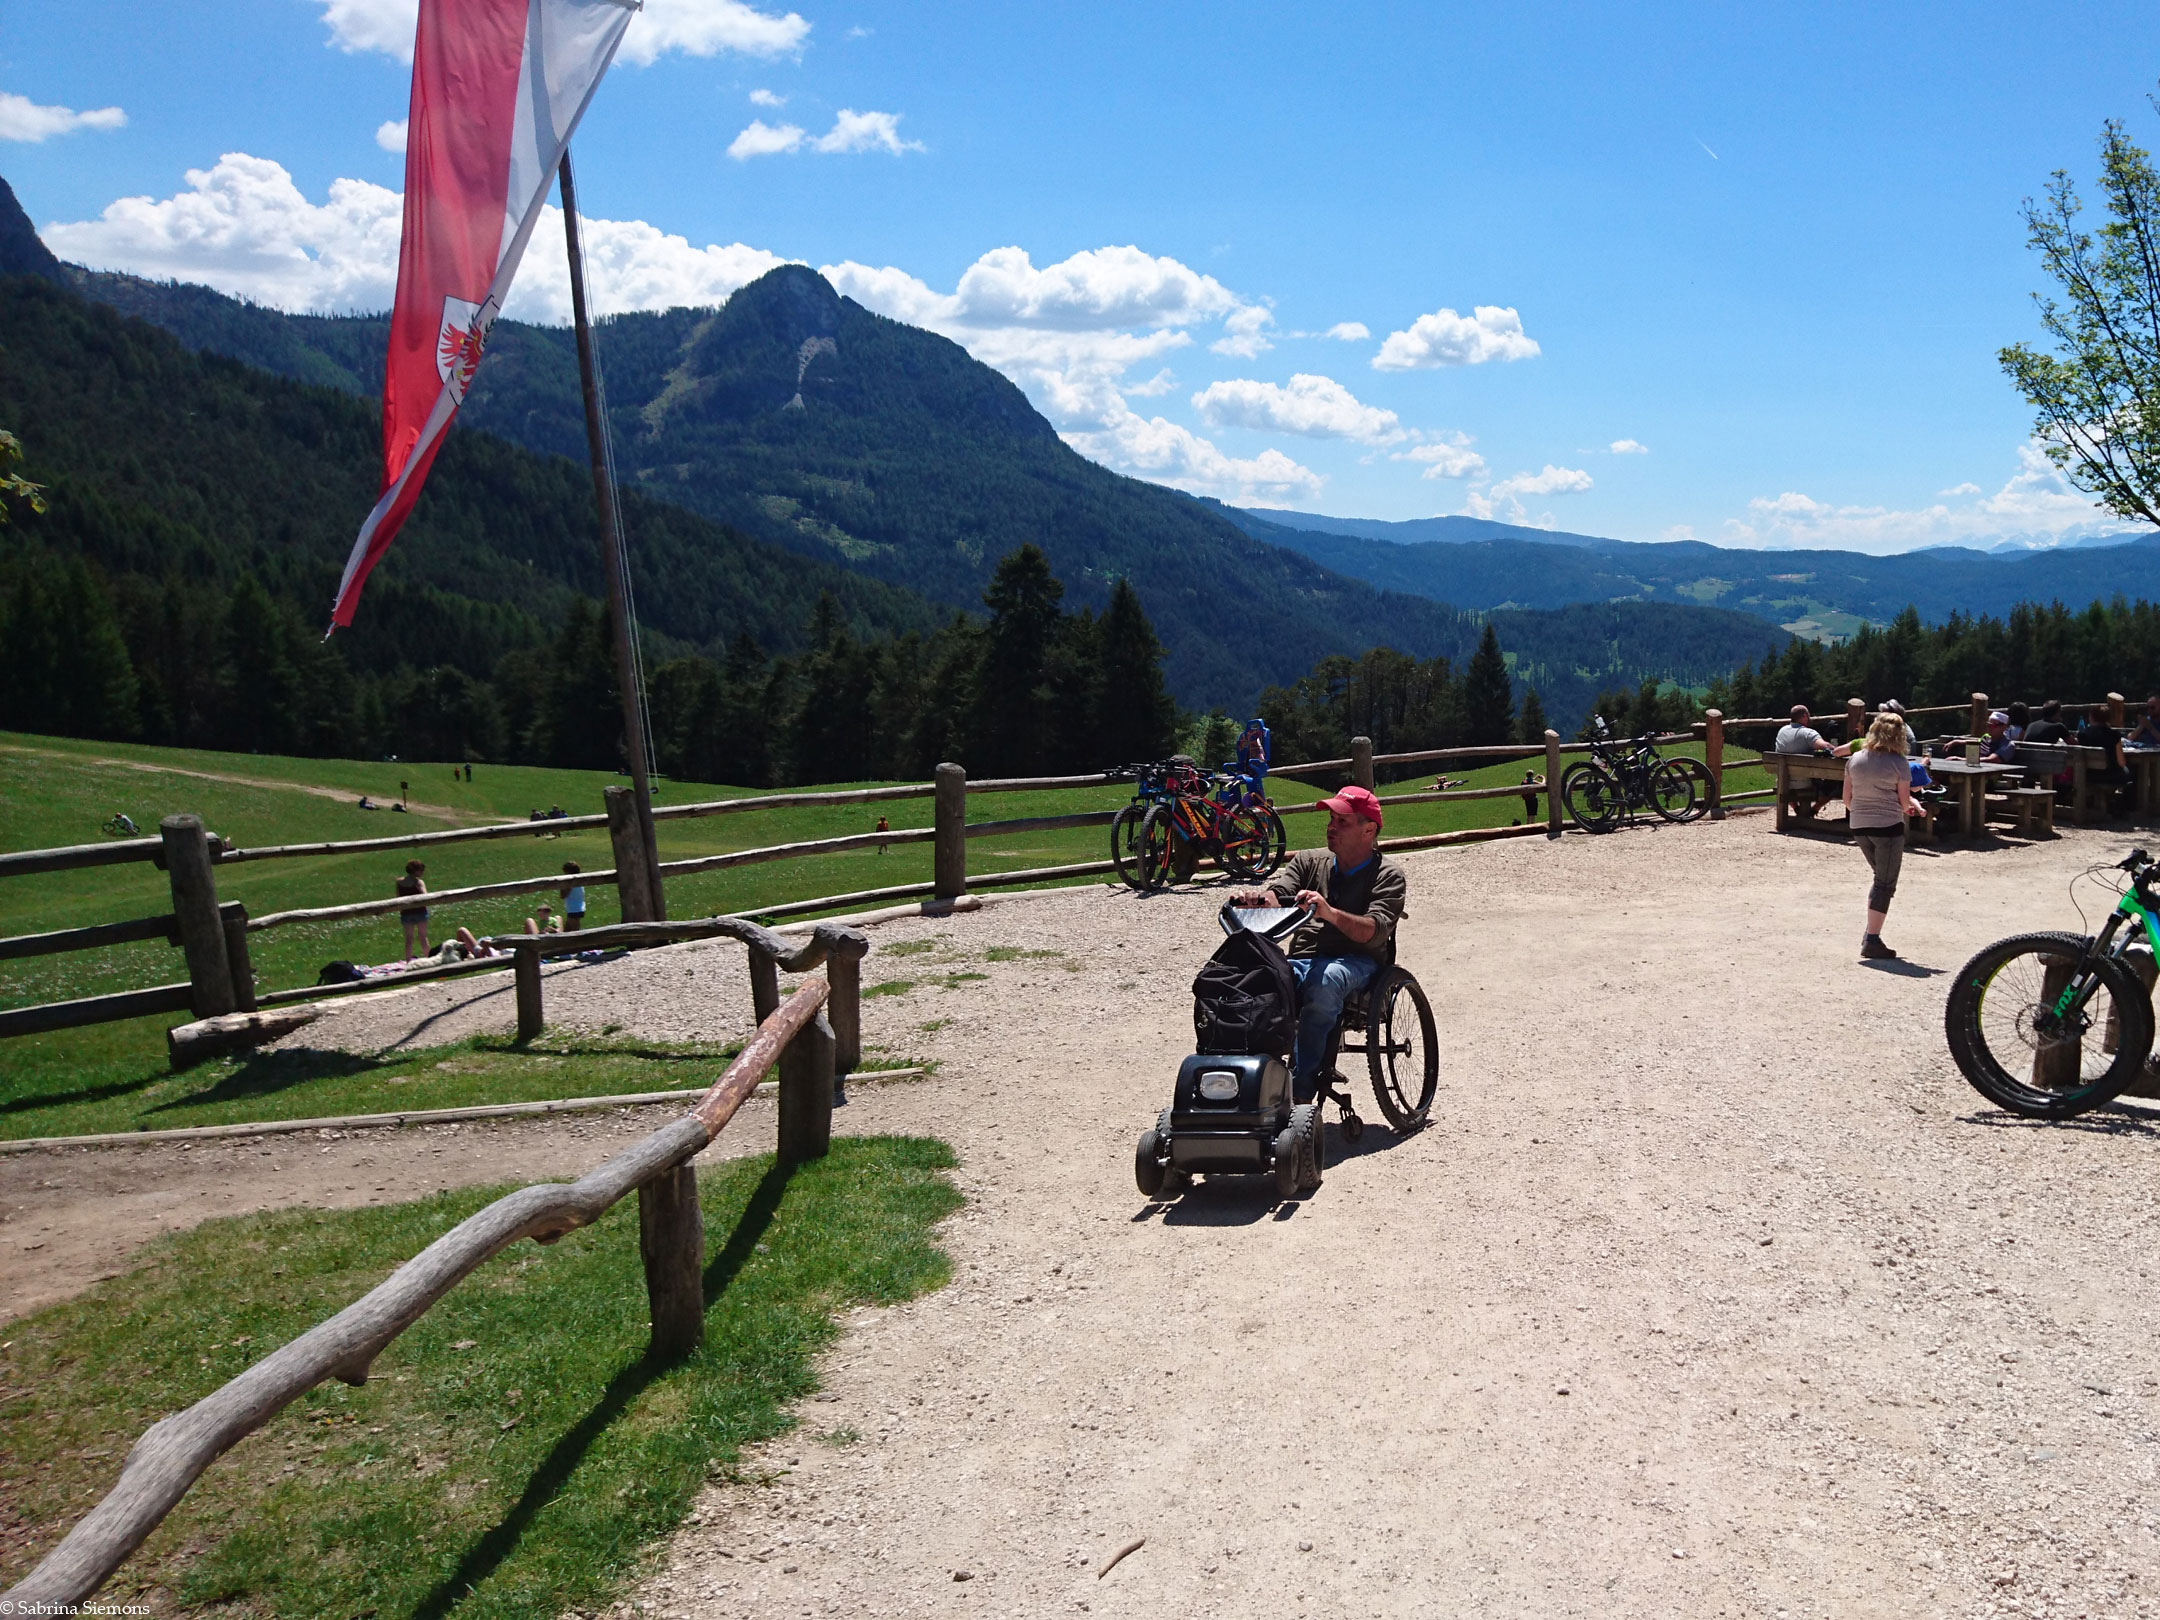 Wheelchair-Tours-Wheelchair-Tuffalm-Entrance-from-the-Hiking-Trail-with-Baumi-1